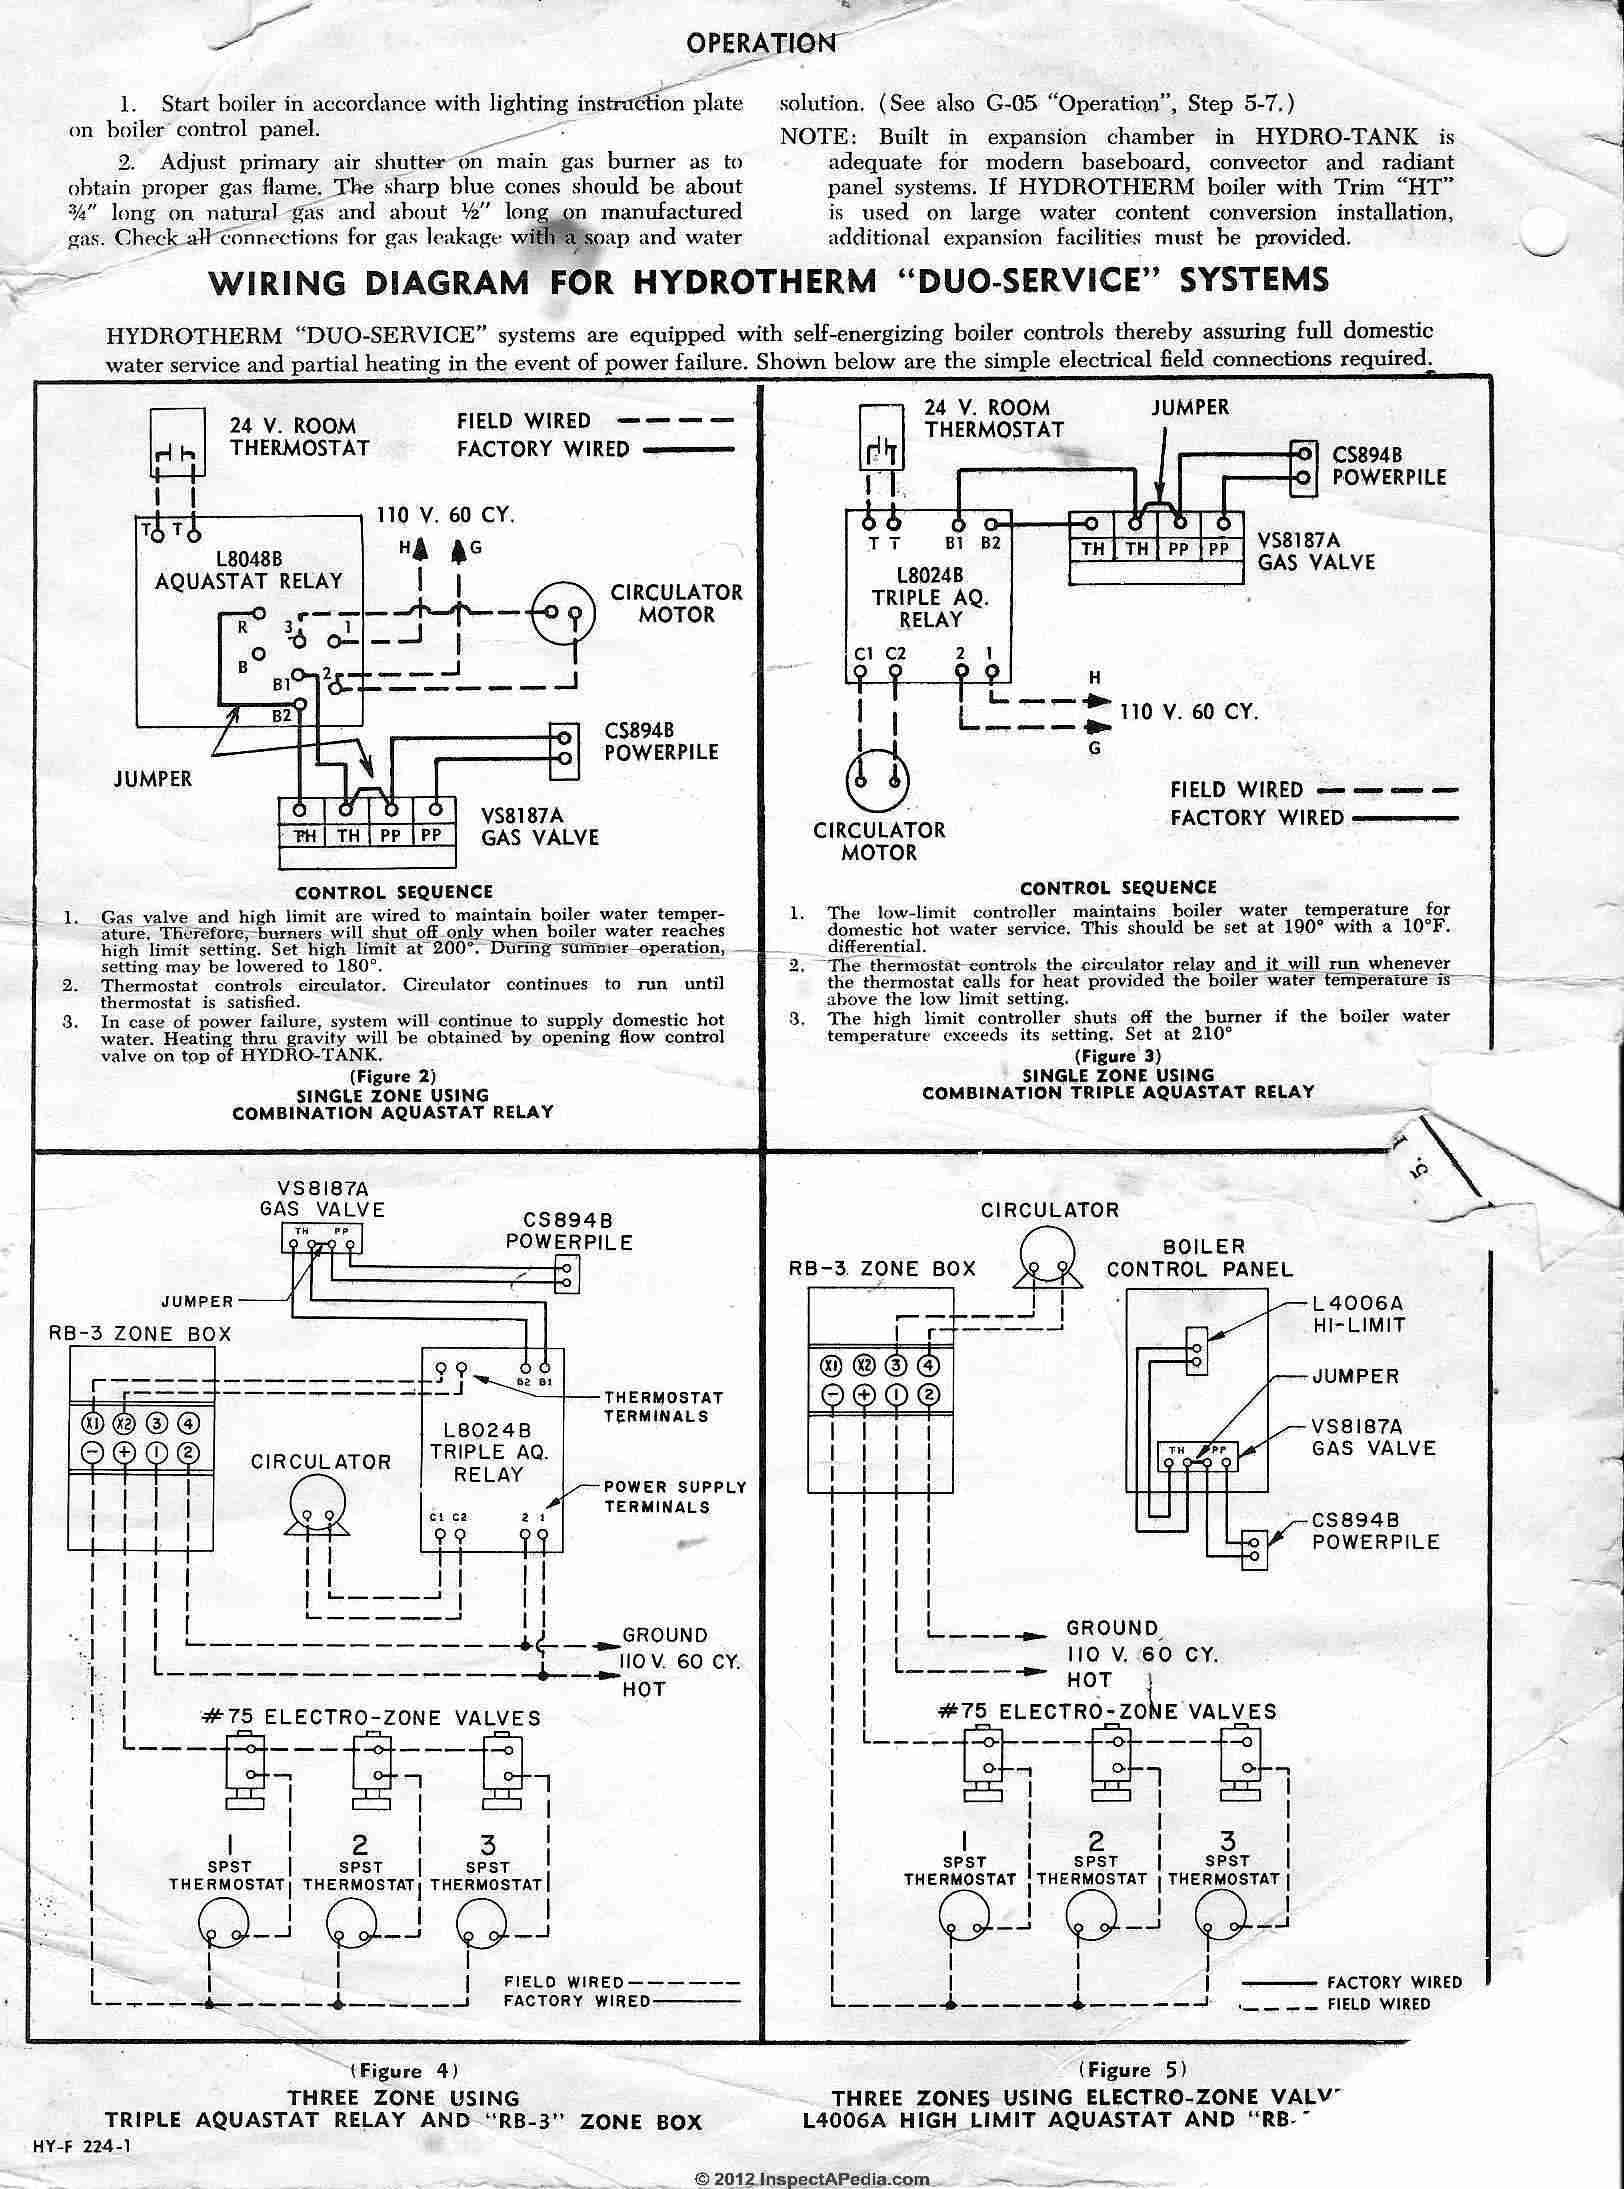 L8024B_Aquastat_0422_DJFcs heating boiler aquastat control diagnosis, troubleshooting, repair Honeywell Thermostat Wiring Diagram at reclaimingppi.co